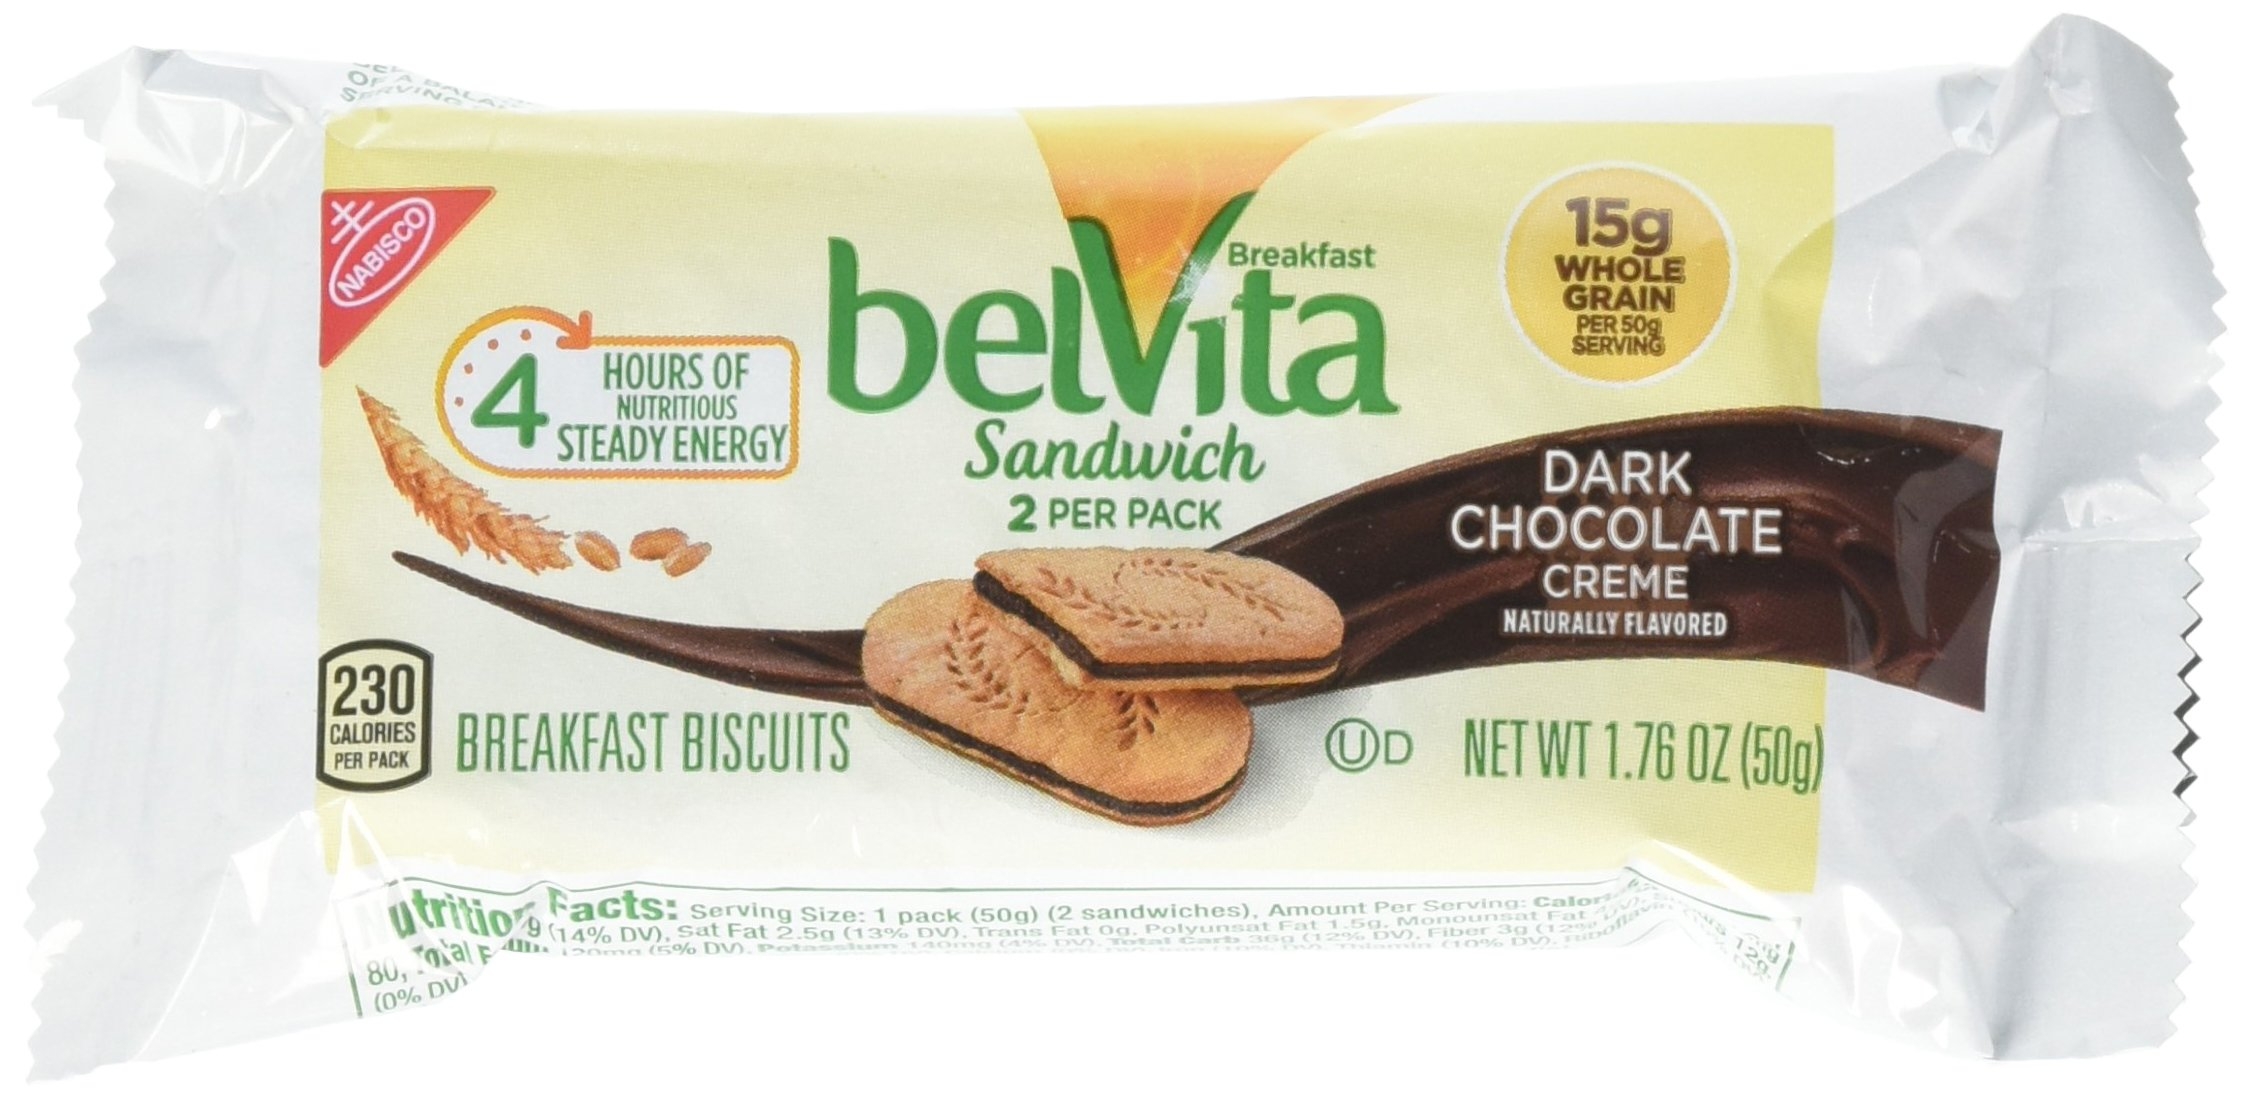 belVita Dark Chocolate Creme Sandwich Breakfast Biscuits, 5 Count Box, 8.8 Ounce (Pack of 6)